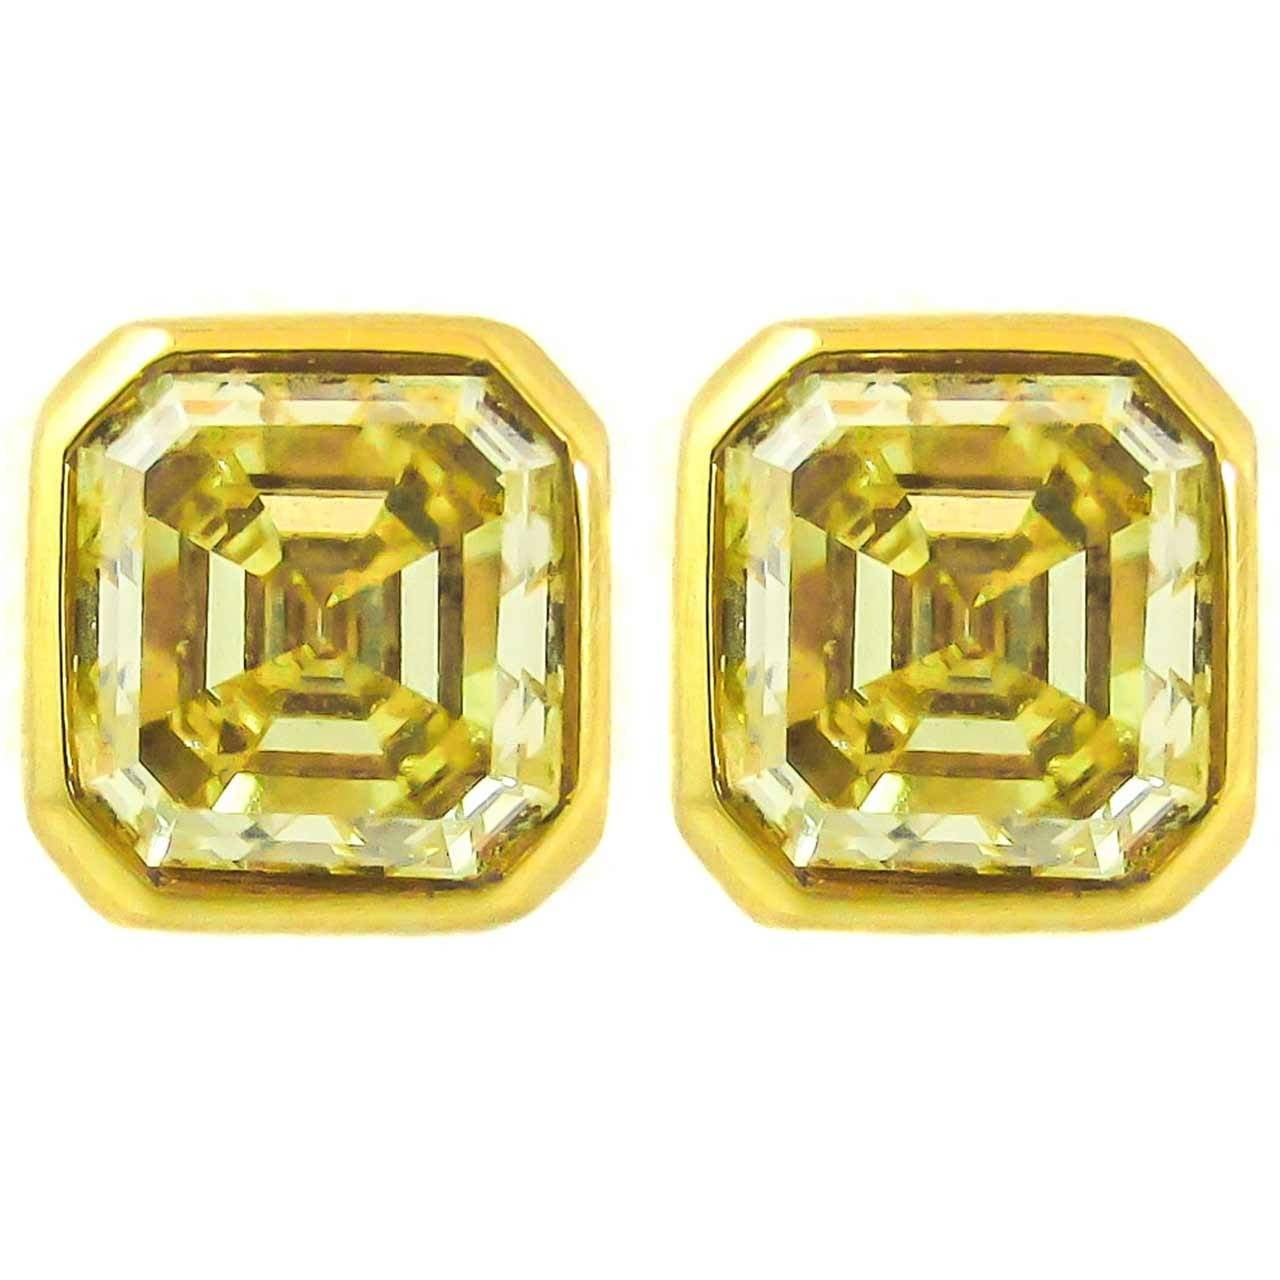 yellow a flowery stud range s jewelry of teens earring gold earrings youme kids girl offers in